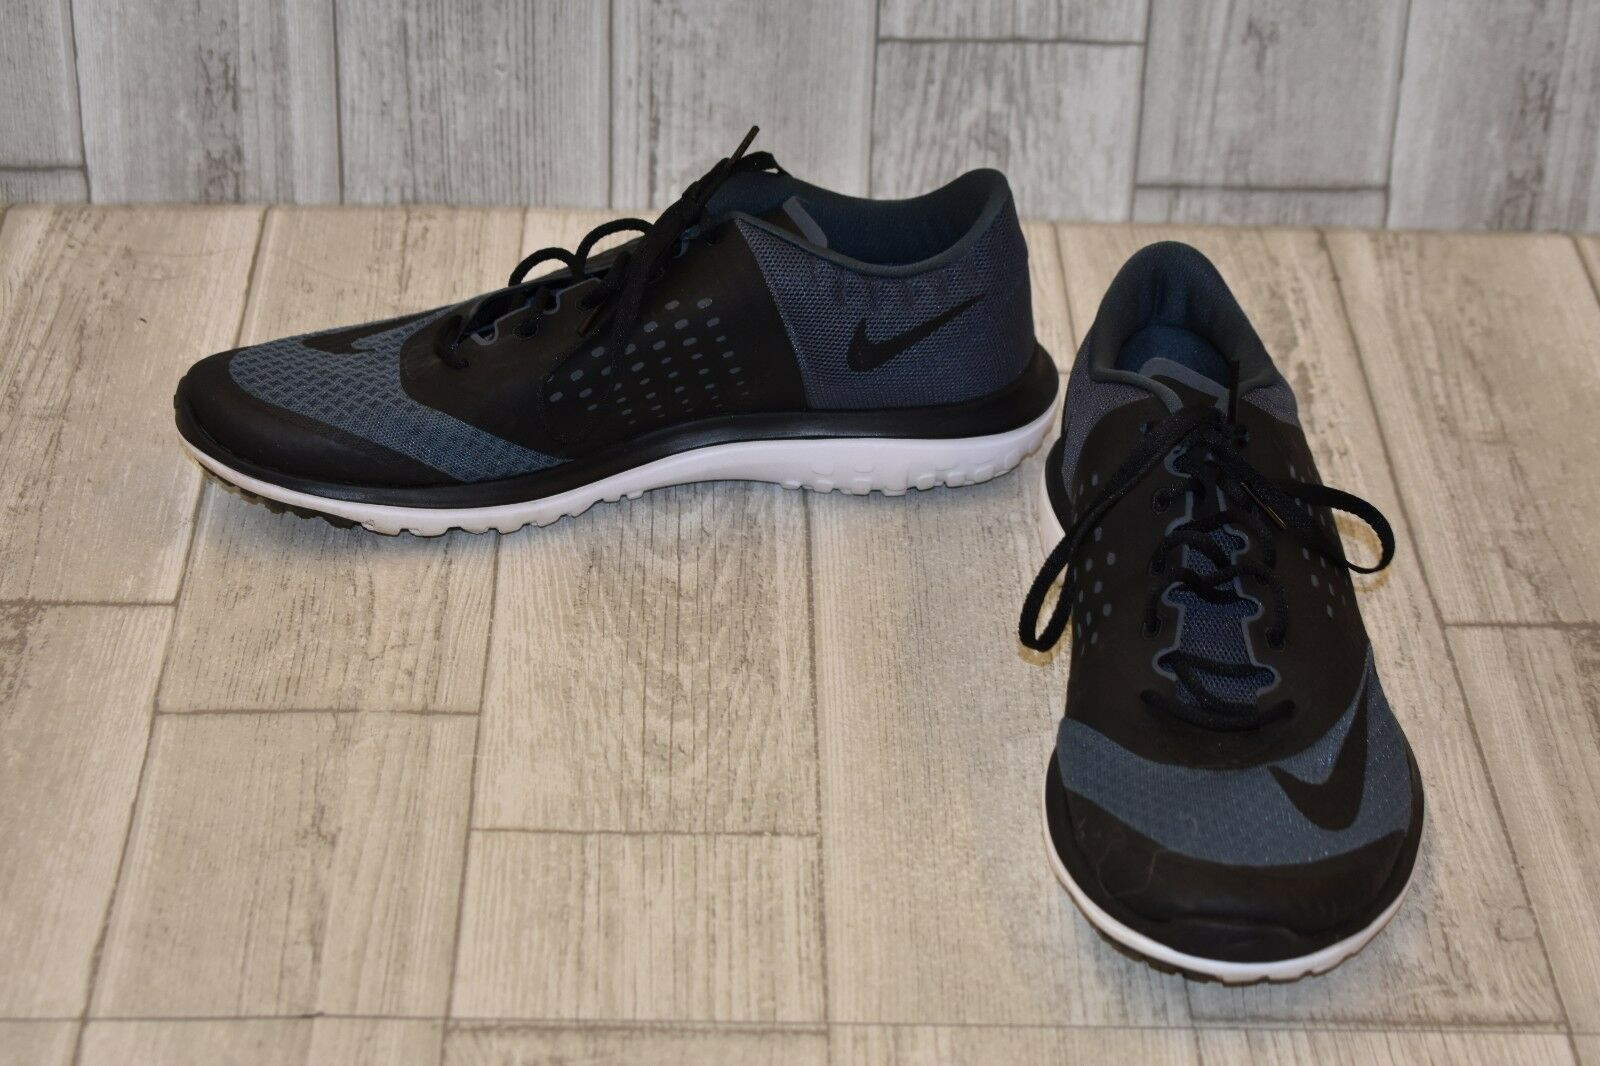 Nike FS Lite Run 2 Lightweight Running Shoes, Men's Comfortable New shoes for men and women, limited time discount